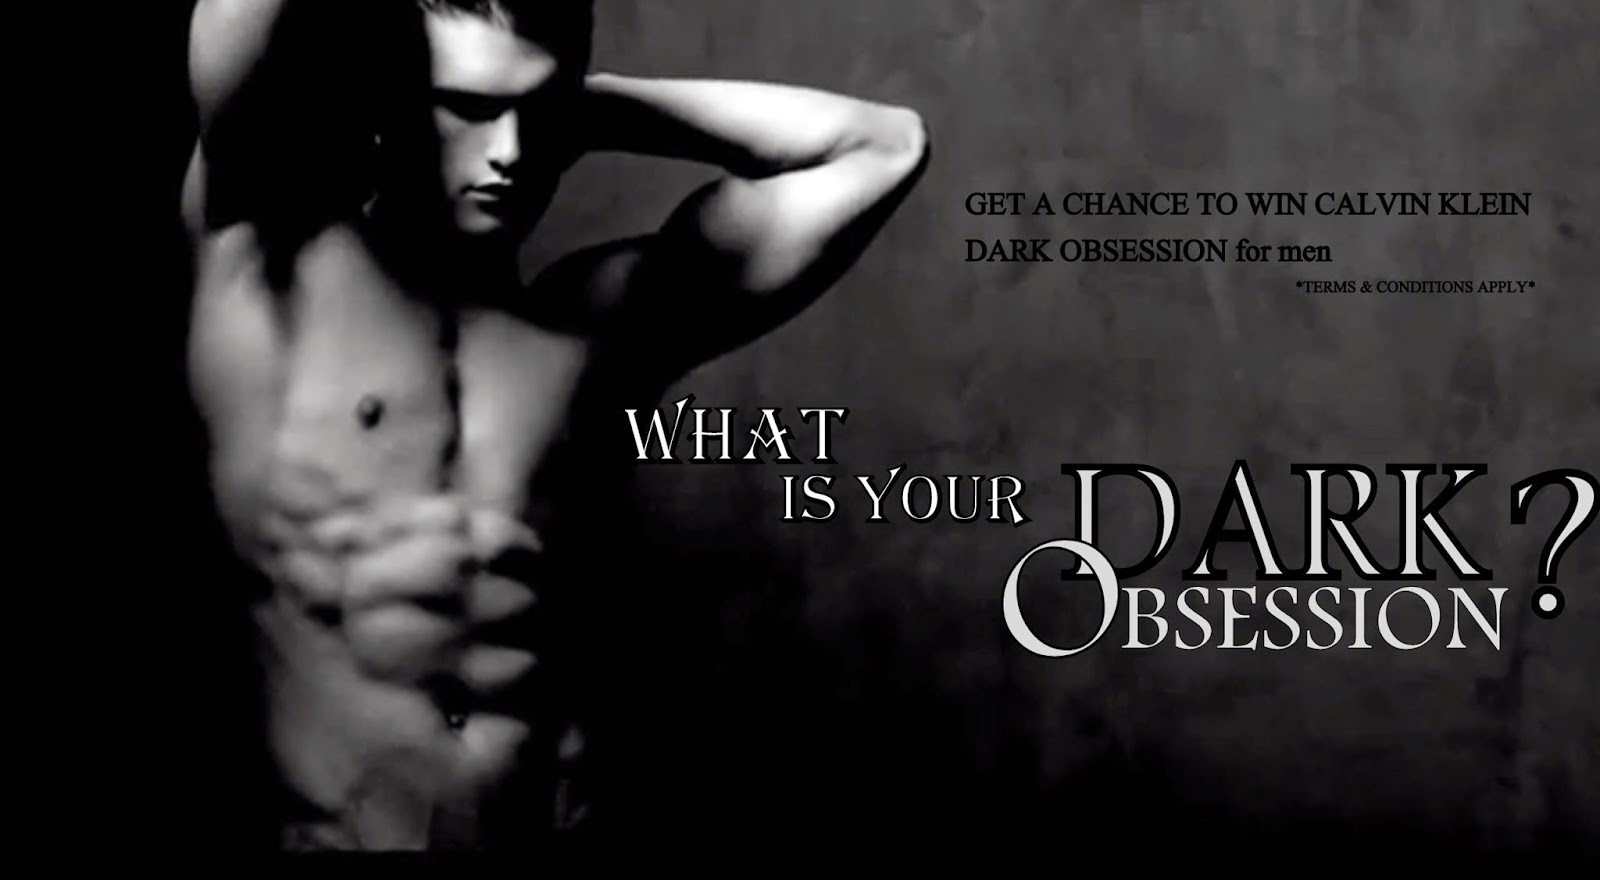 http://thestylechoreo.blogspot.ae/2014/04/giveaway-dark-obsession-for-men-calvin.html